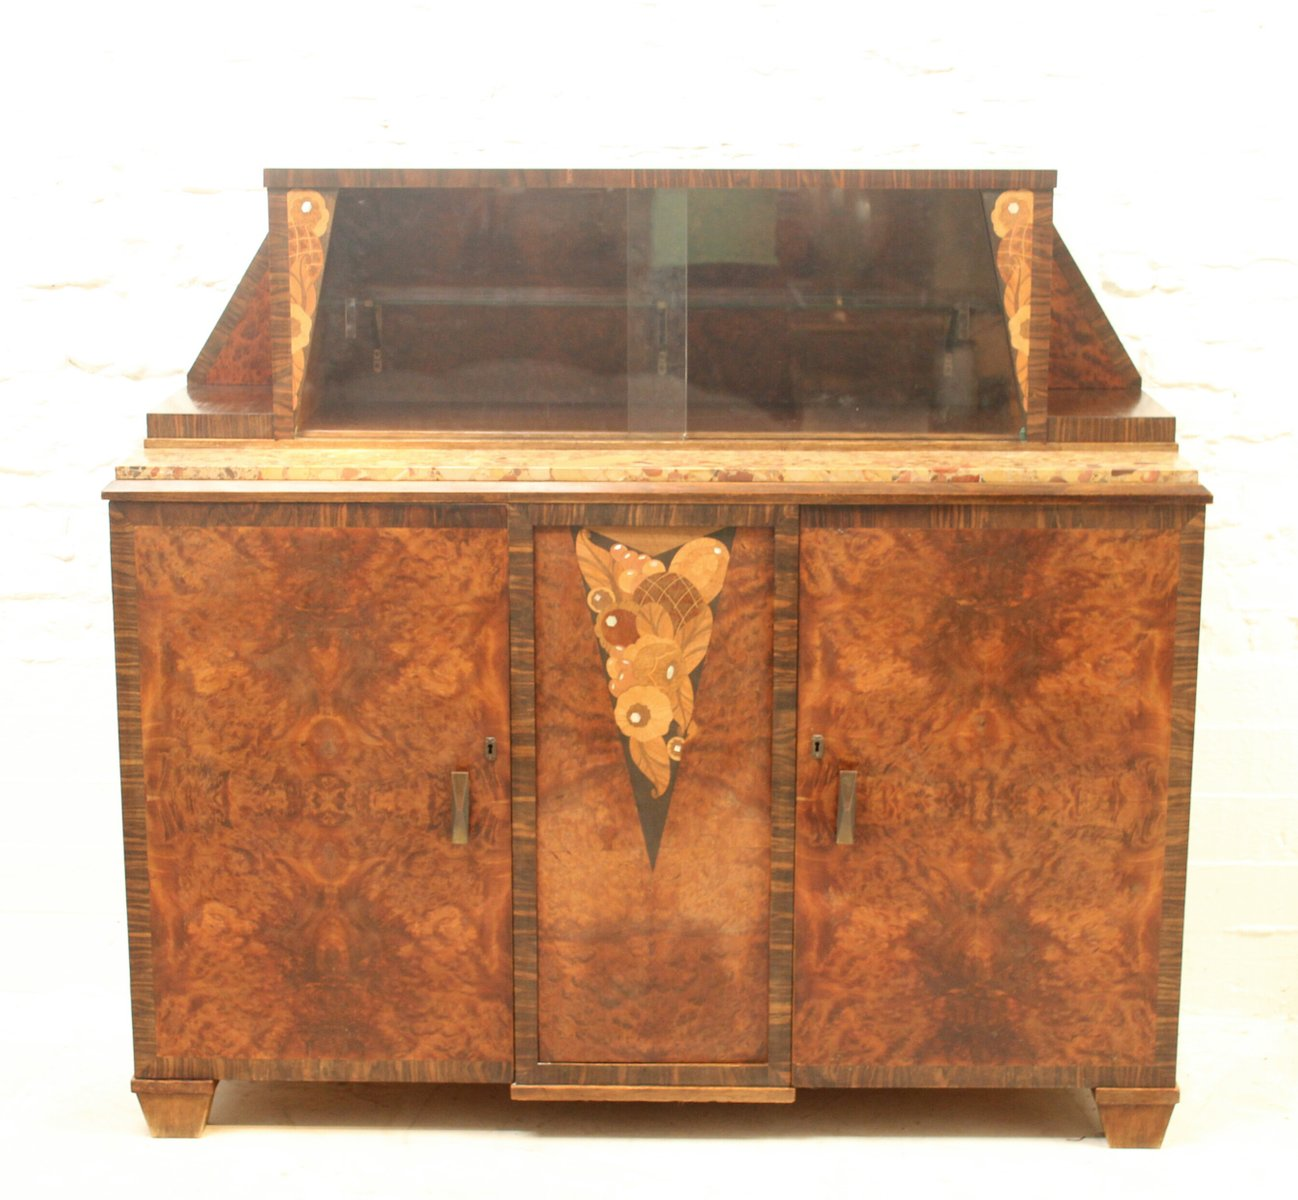 Art Deco Buffet with Display Cabinet for sale at Pamono